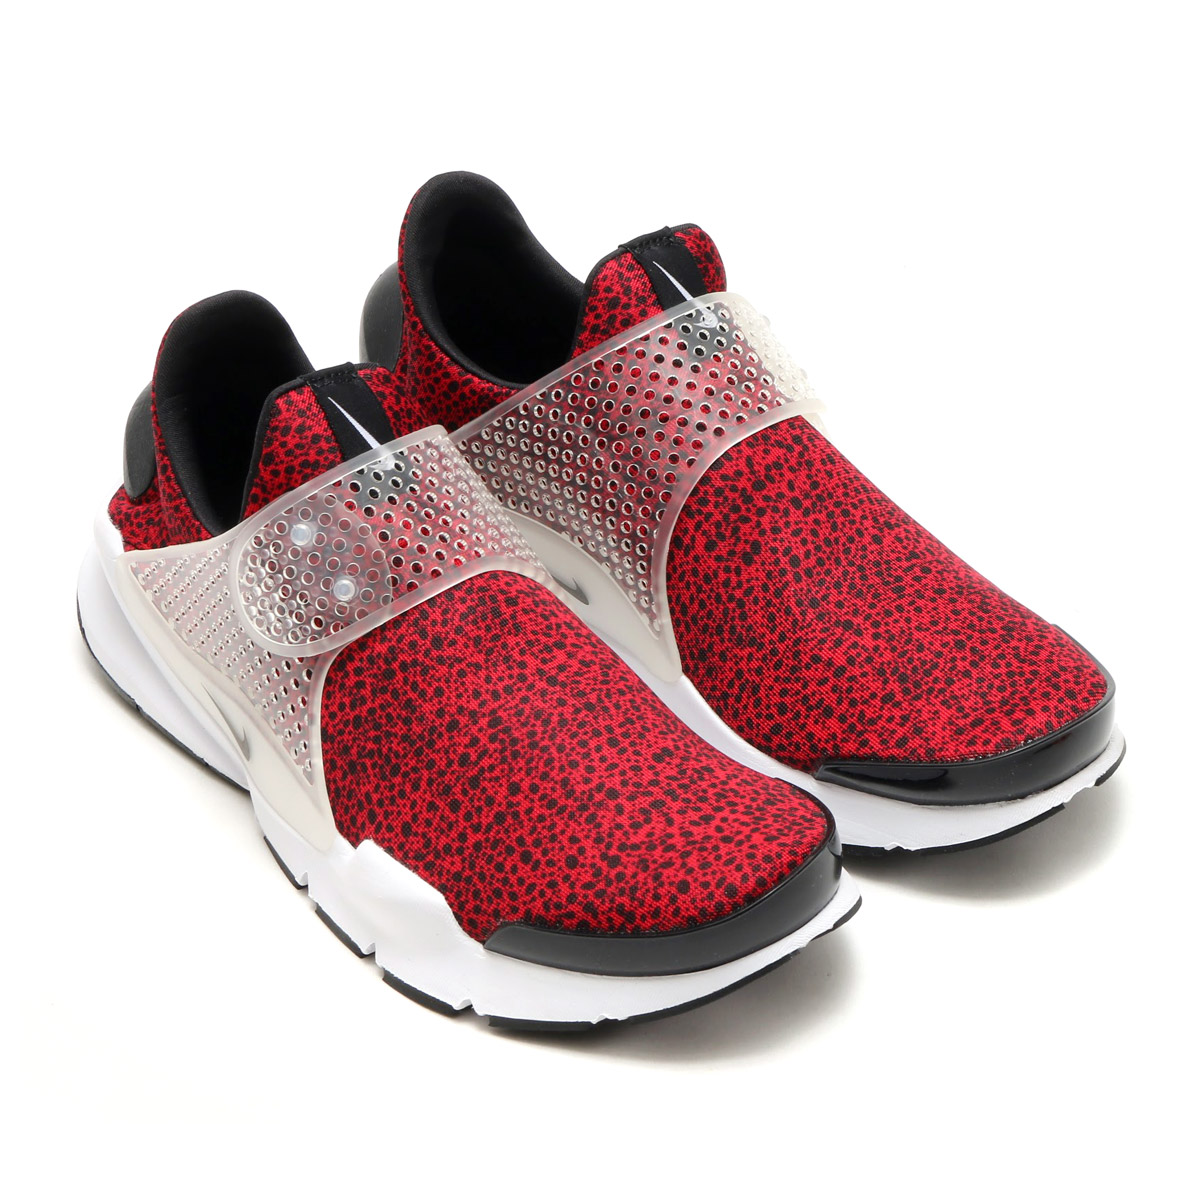 online store dc7f6 3a945 NIKE SOCK DART QS (ナイキソックダート QS) GYM RED/BLACK-WHITE 17SU-S